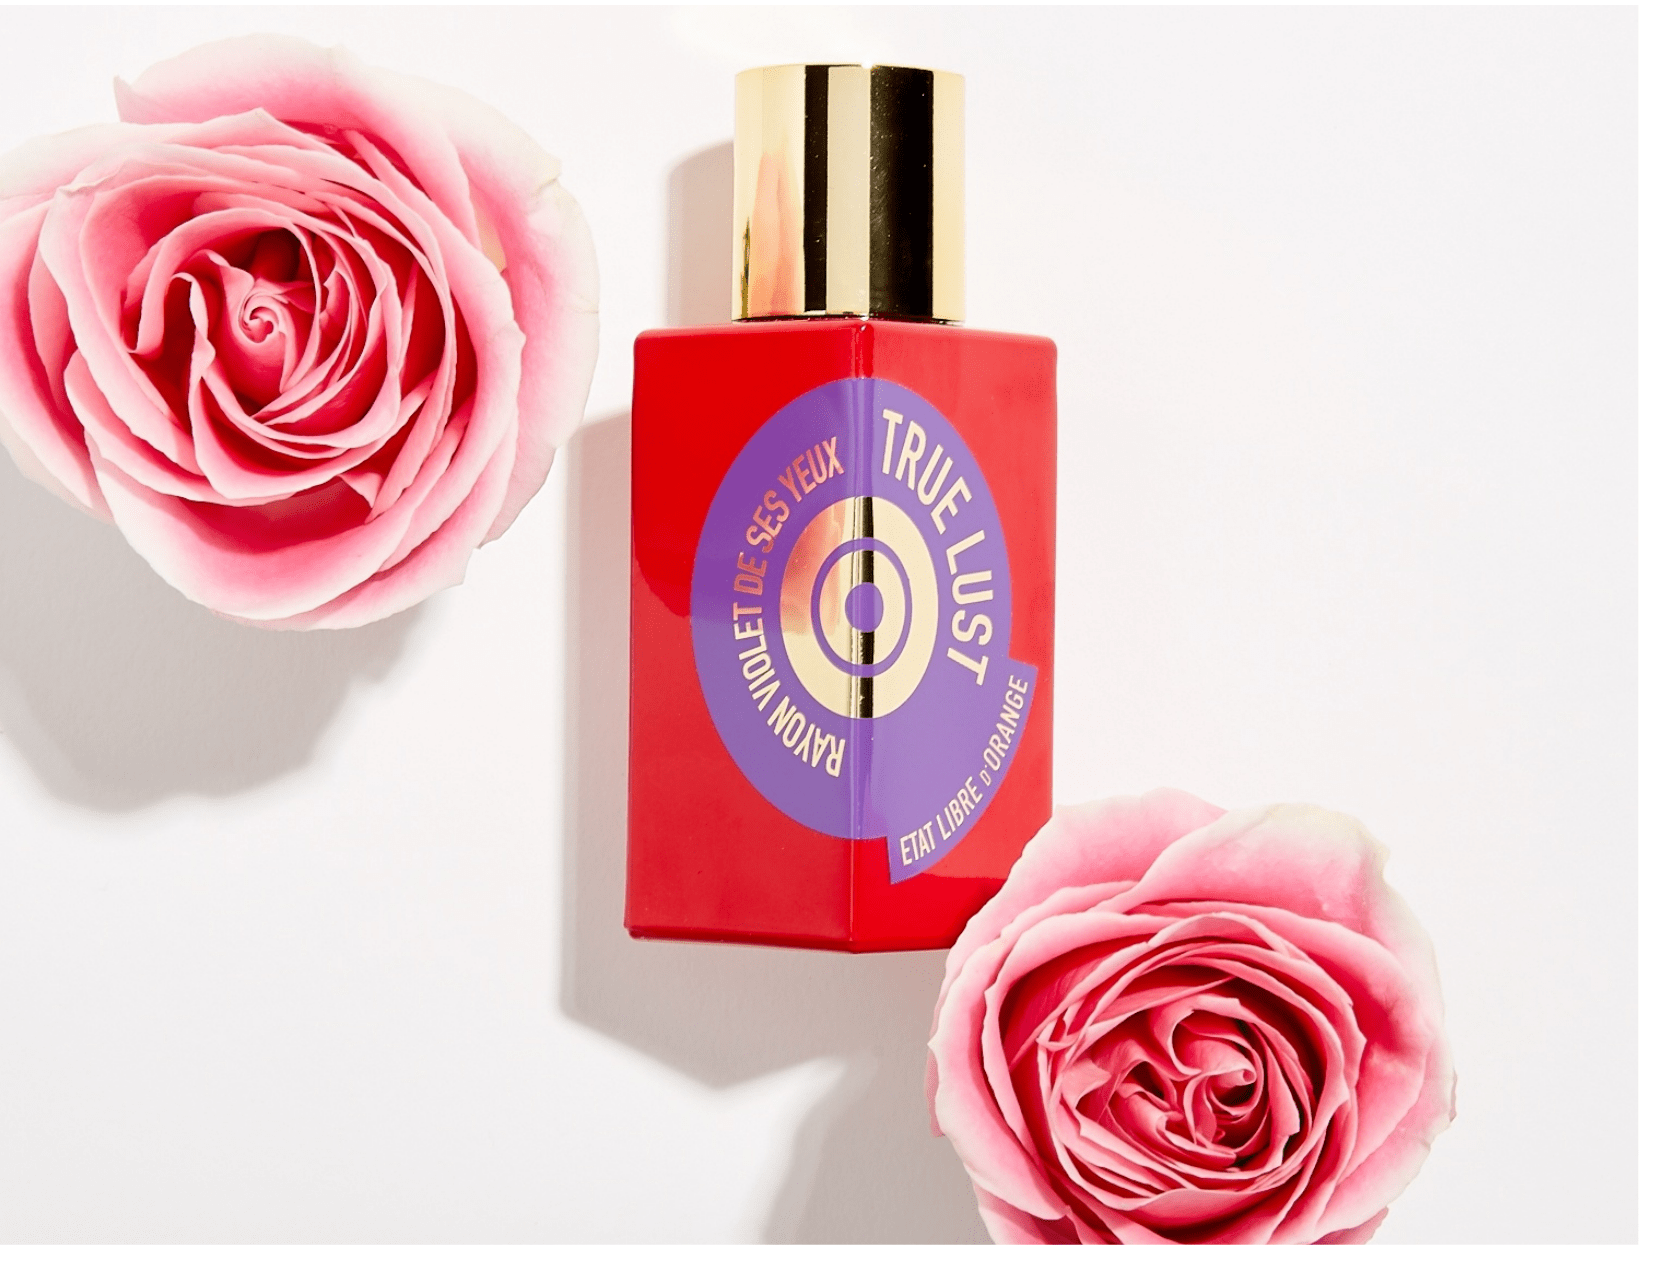 Love at First Scent: True Lust by Etat Libre d'Orange